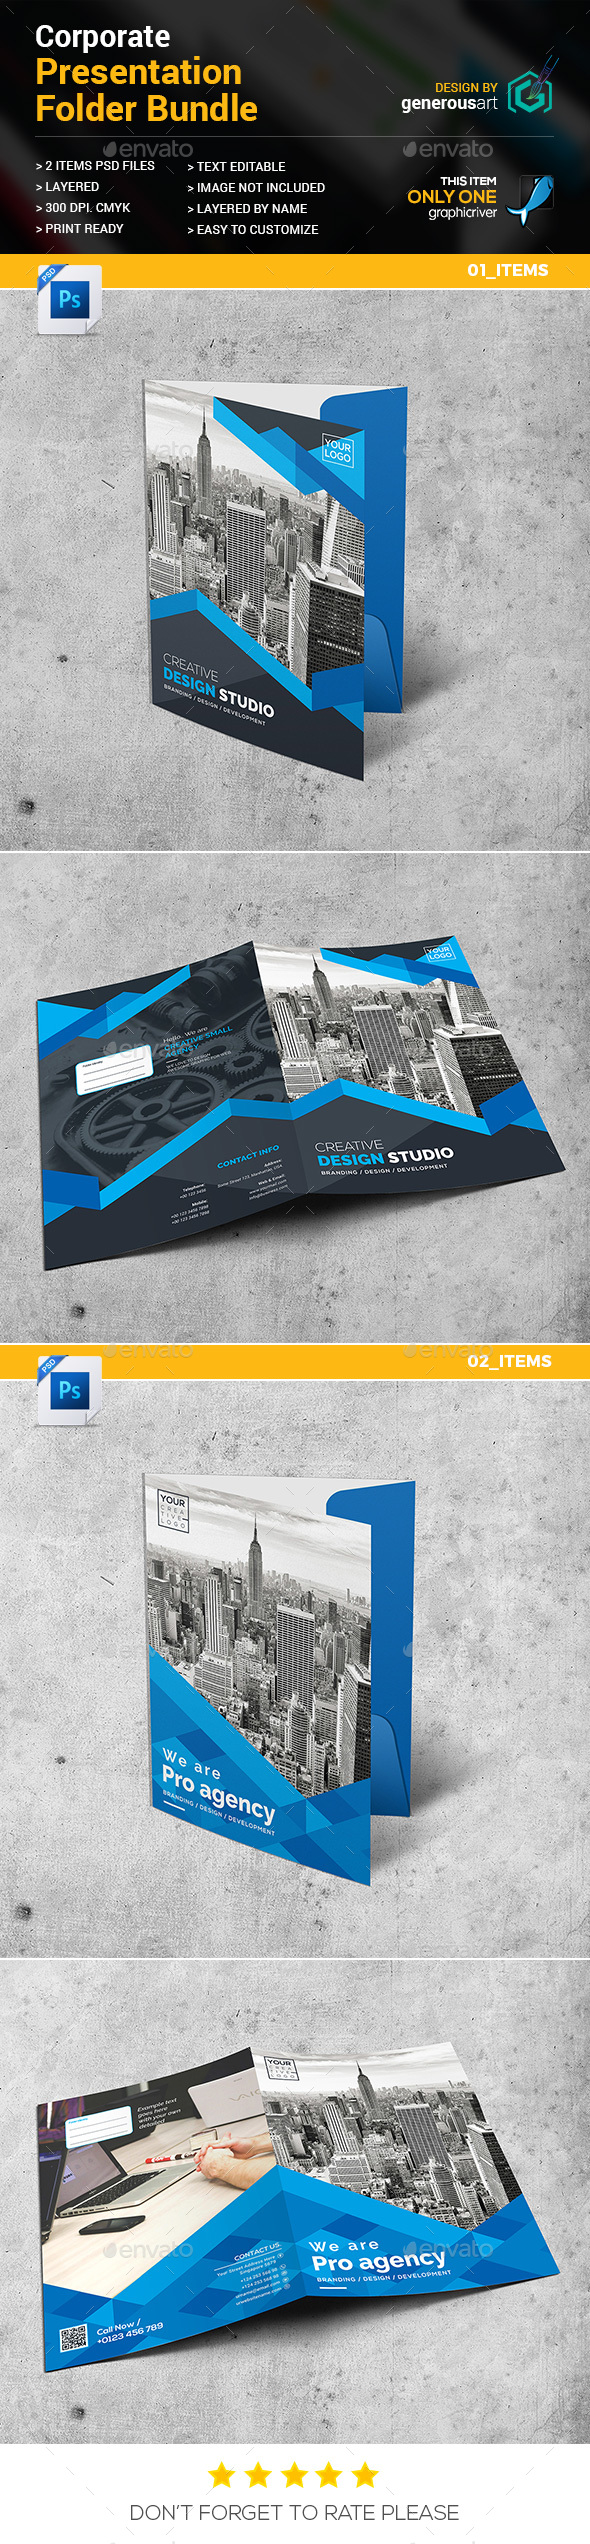 GraphicRiver Presentation Folder Bundle 2 in 1 20999909